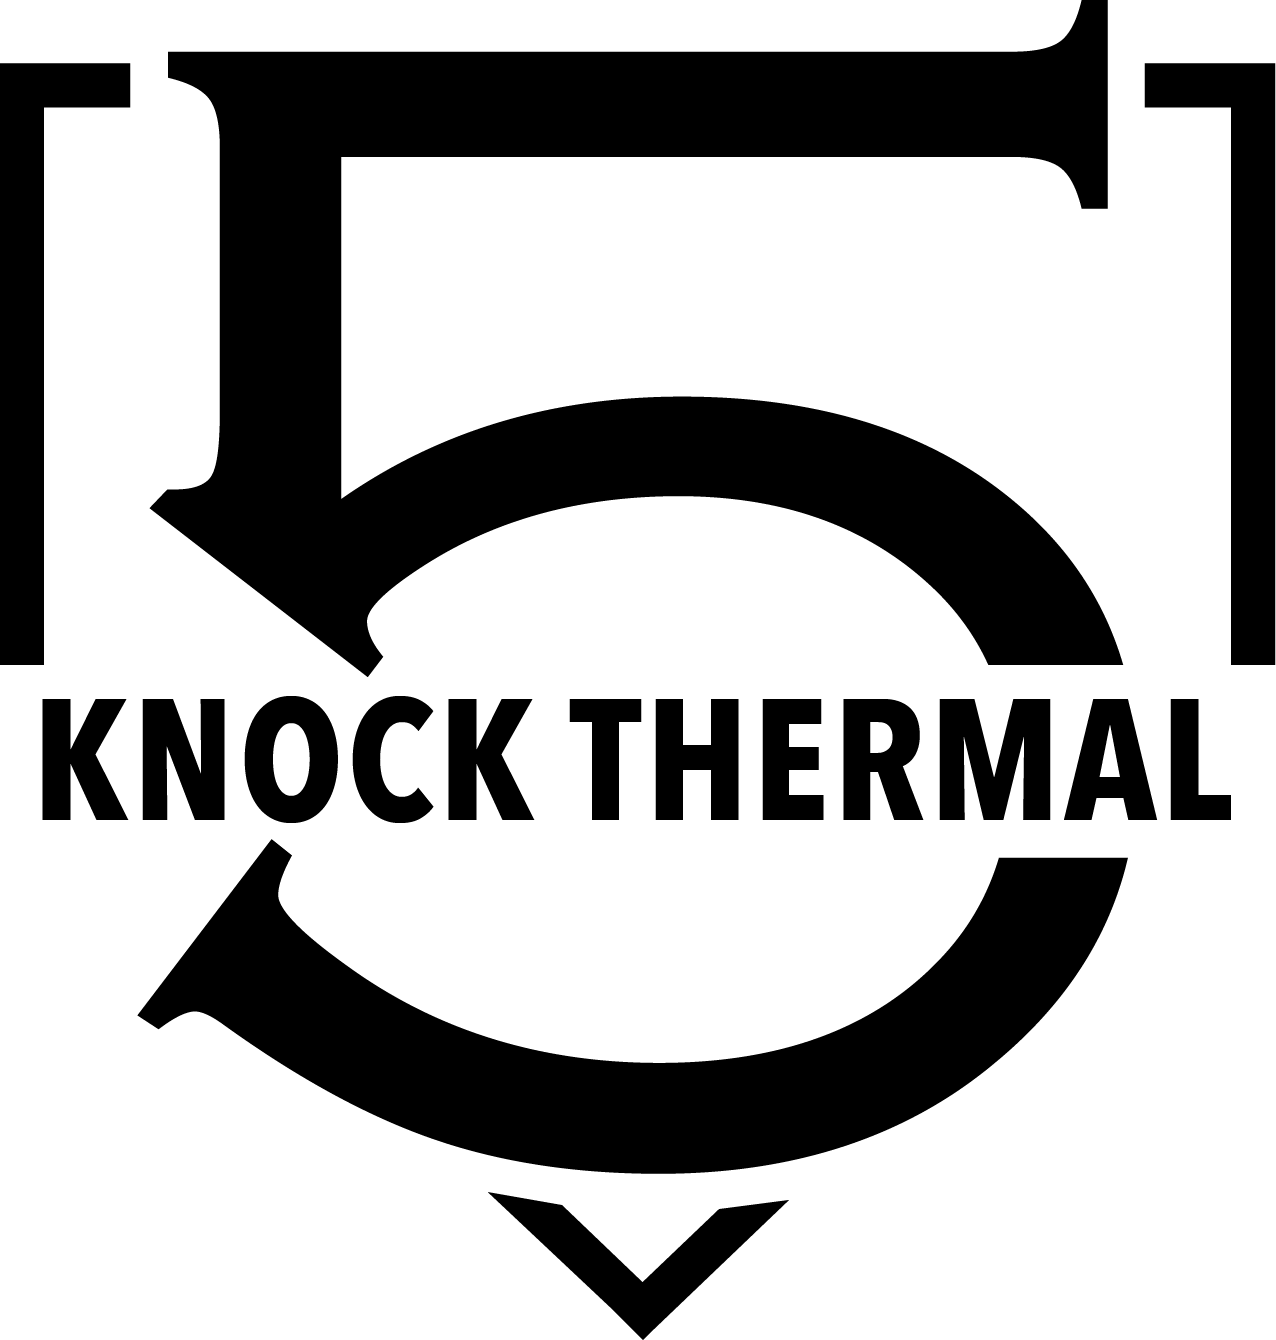 9 5 KnockThermal